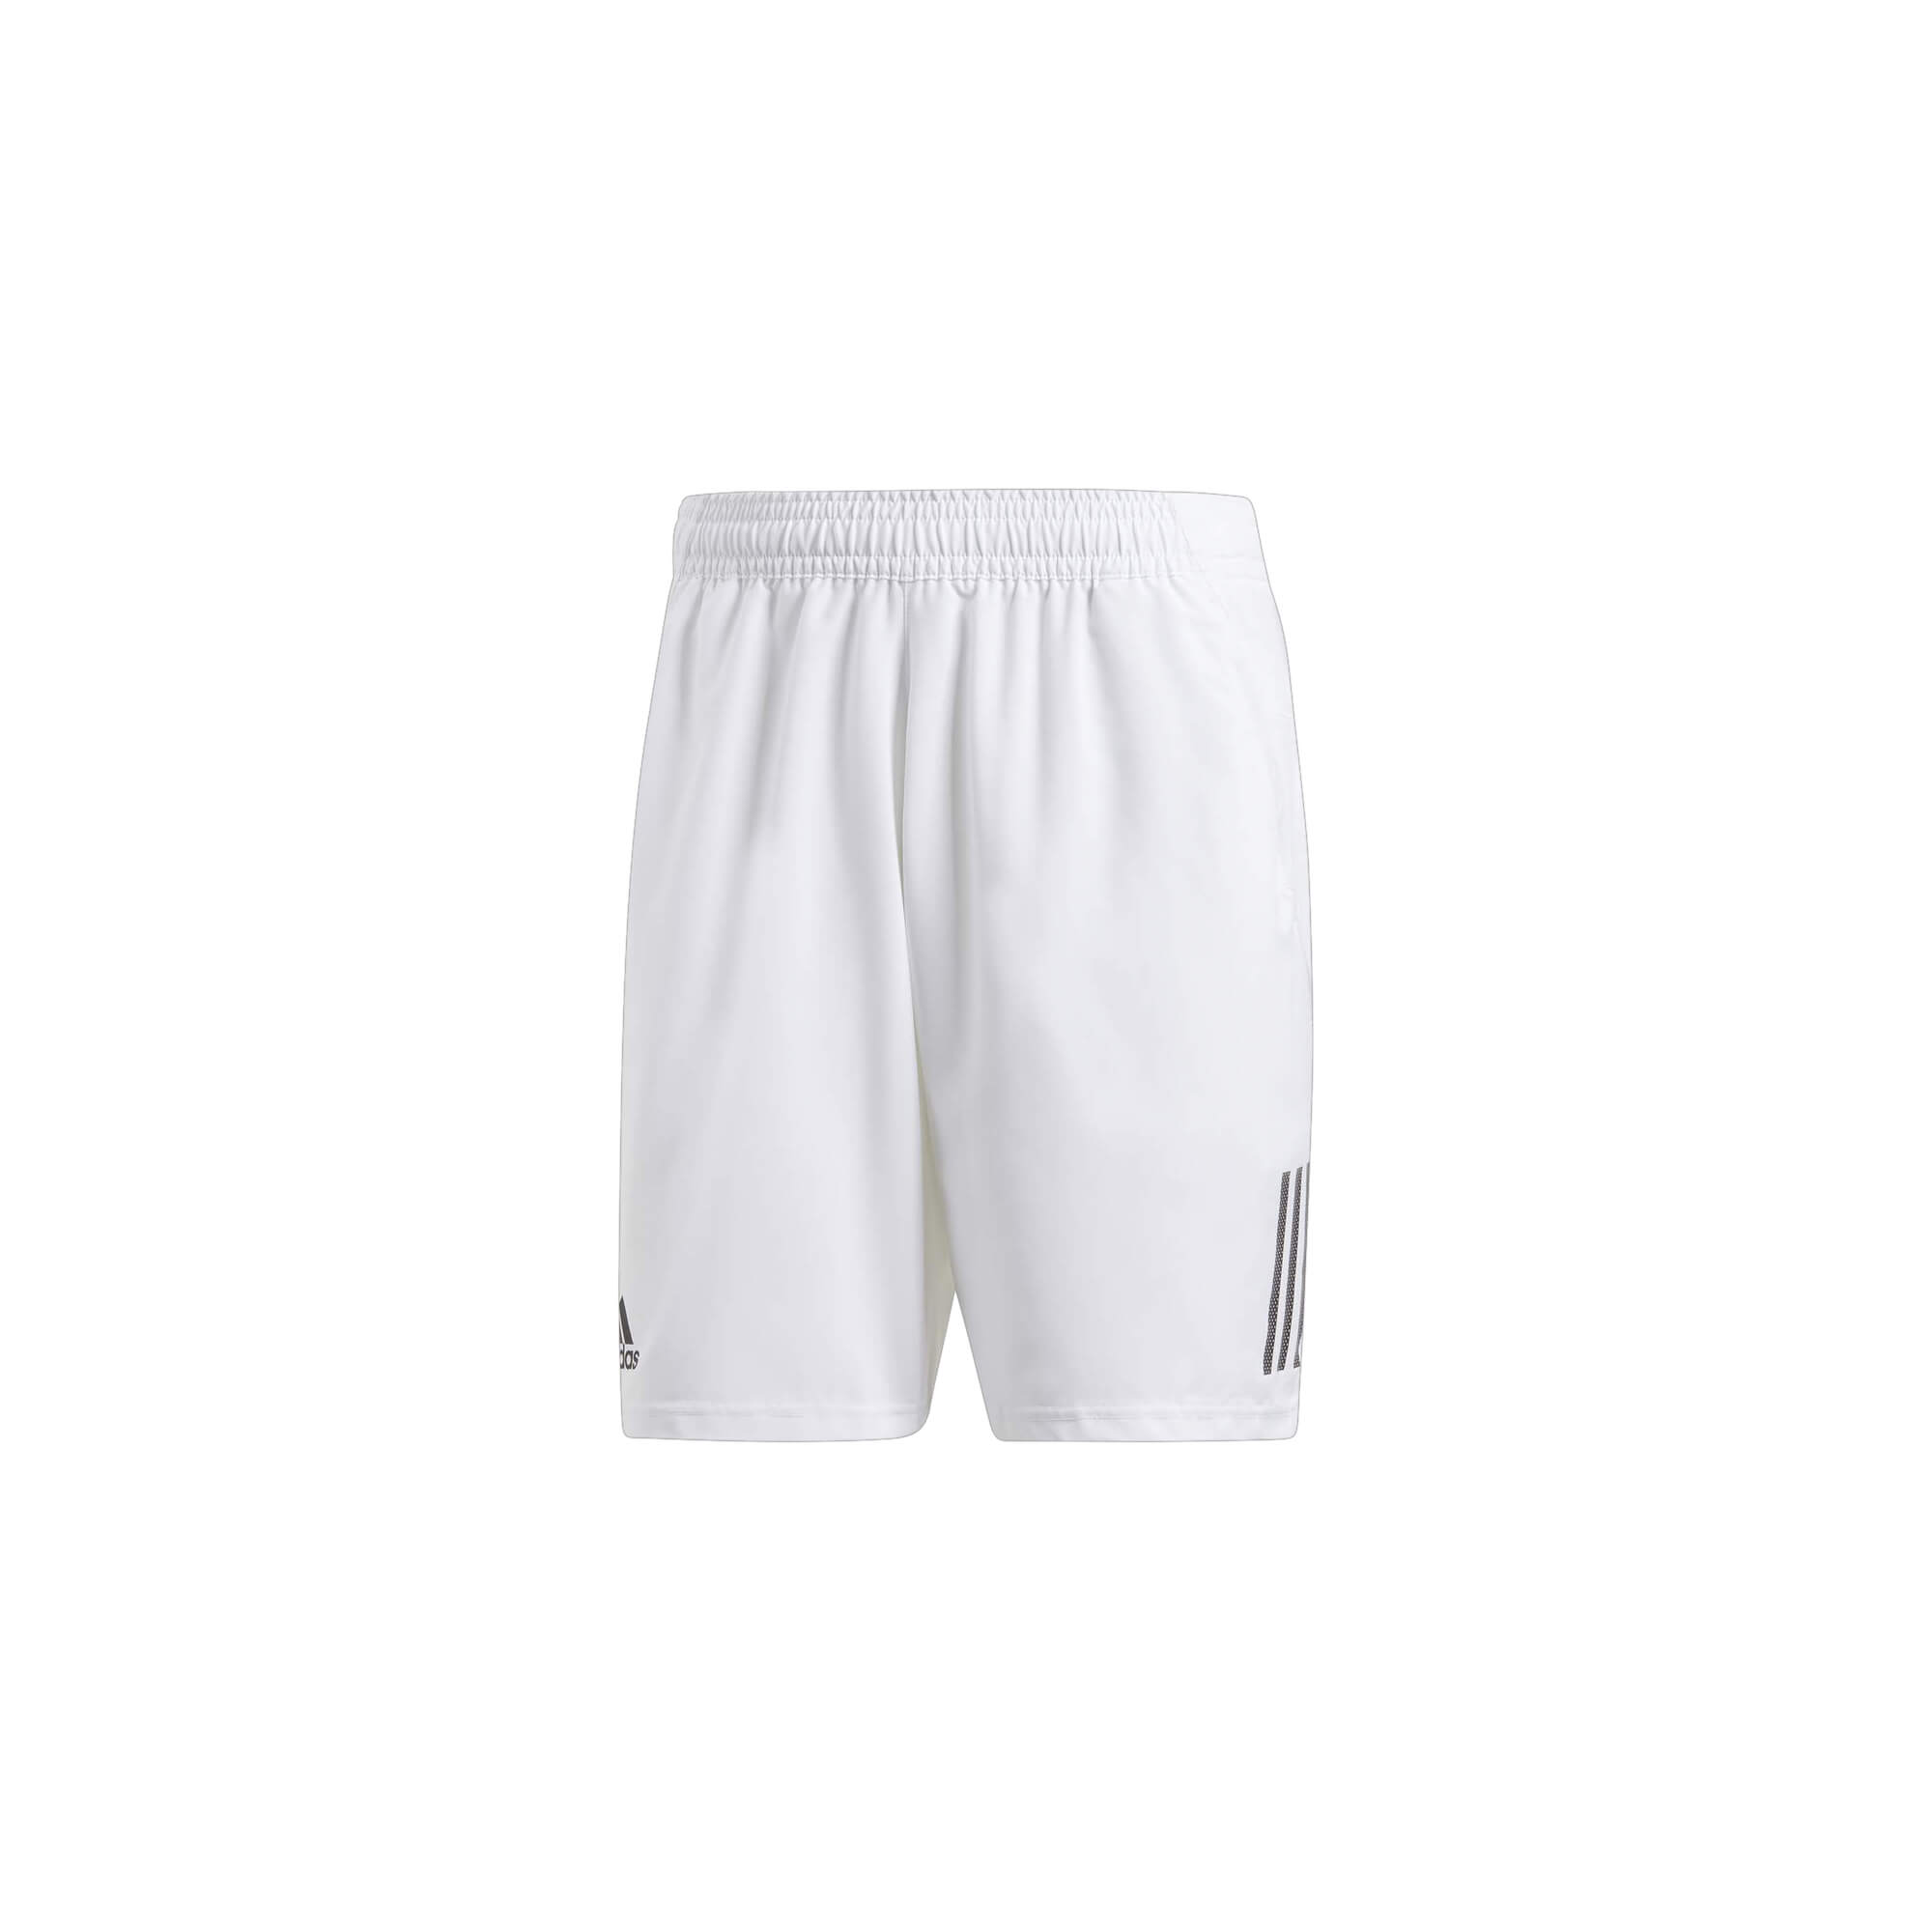 Club 3Stripe Short adidas poza